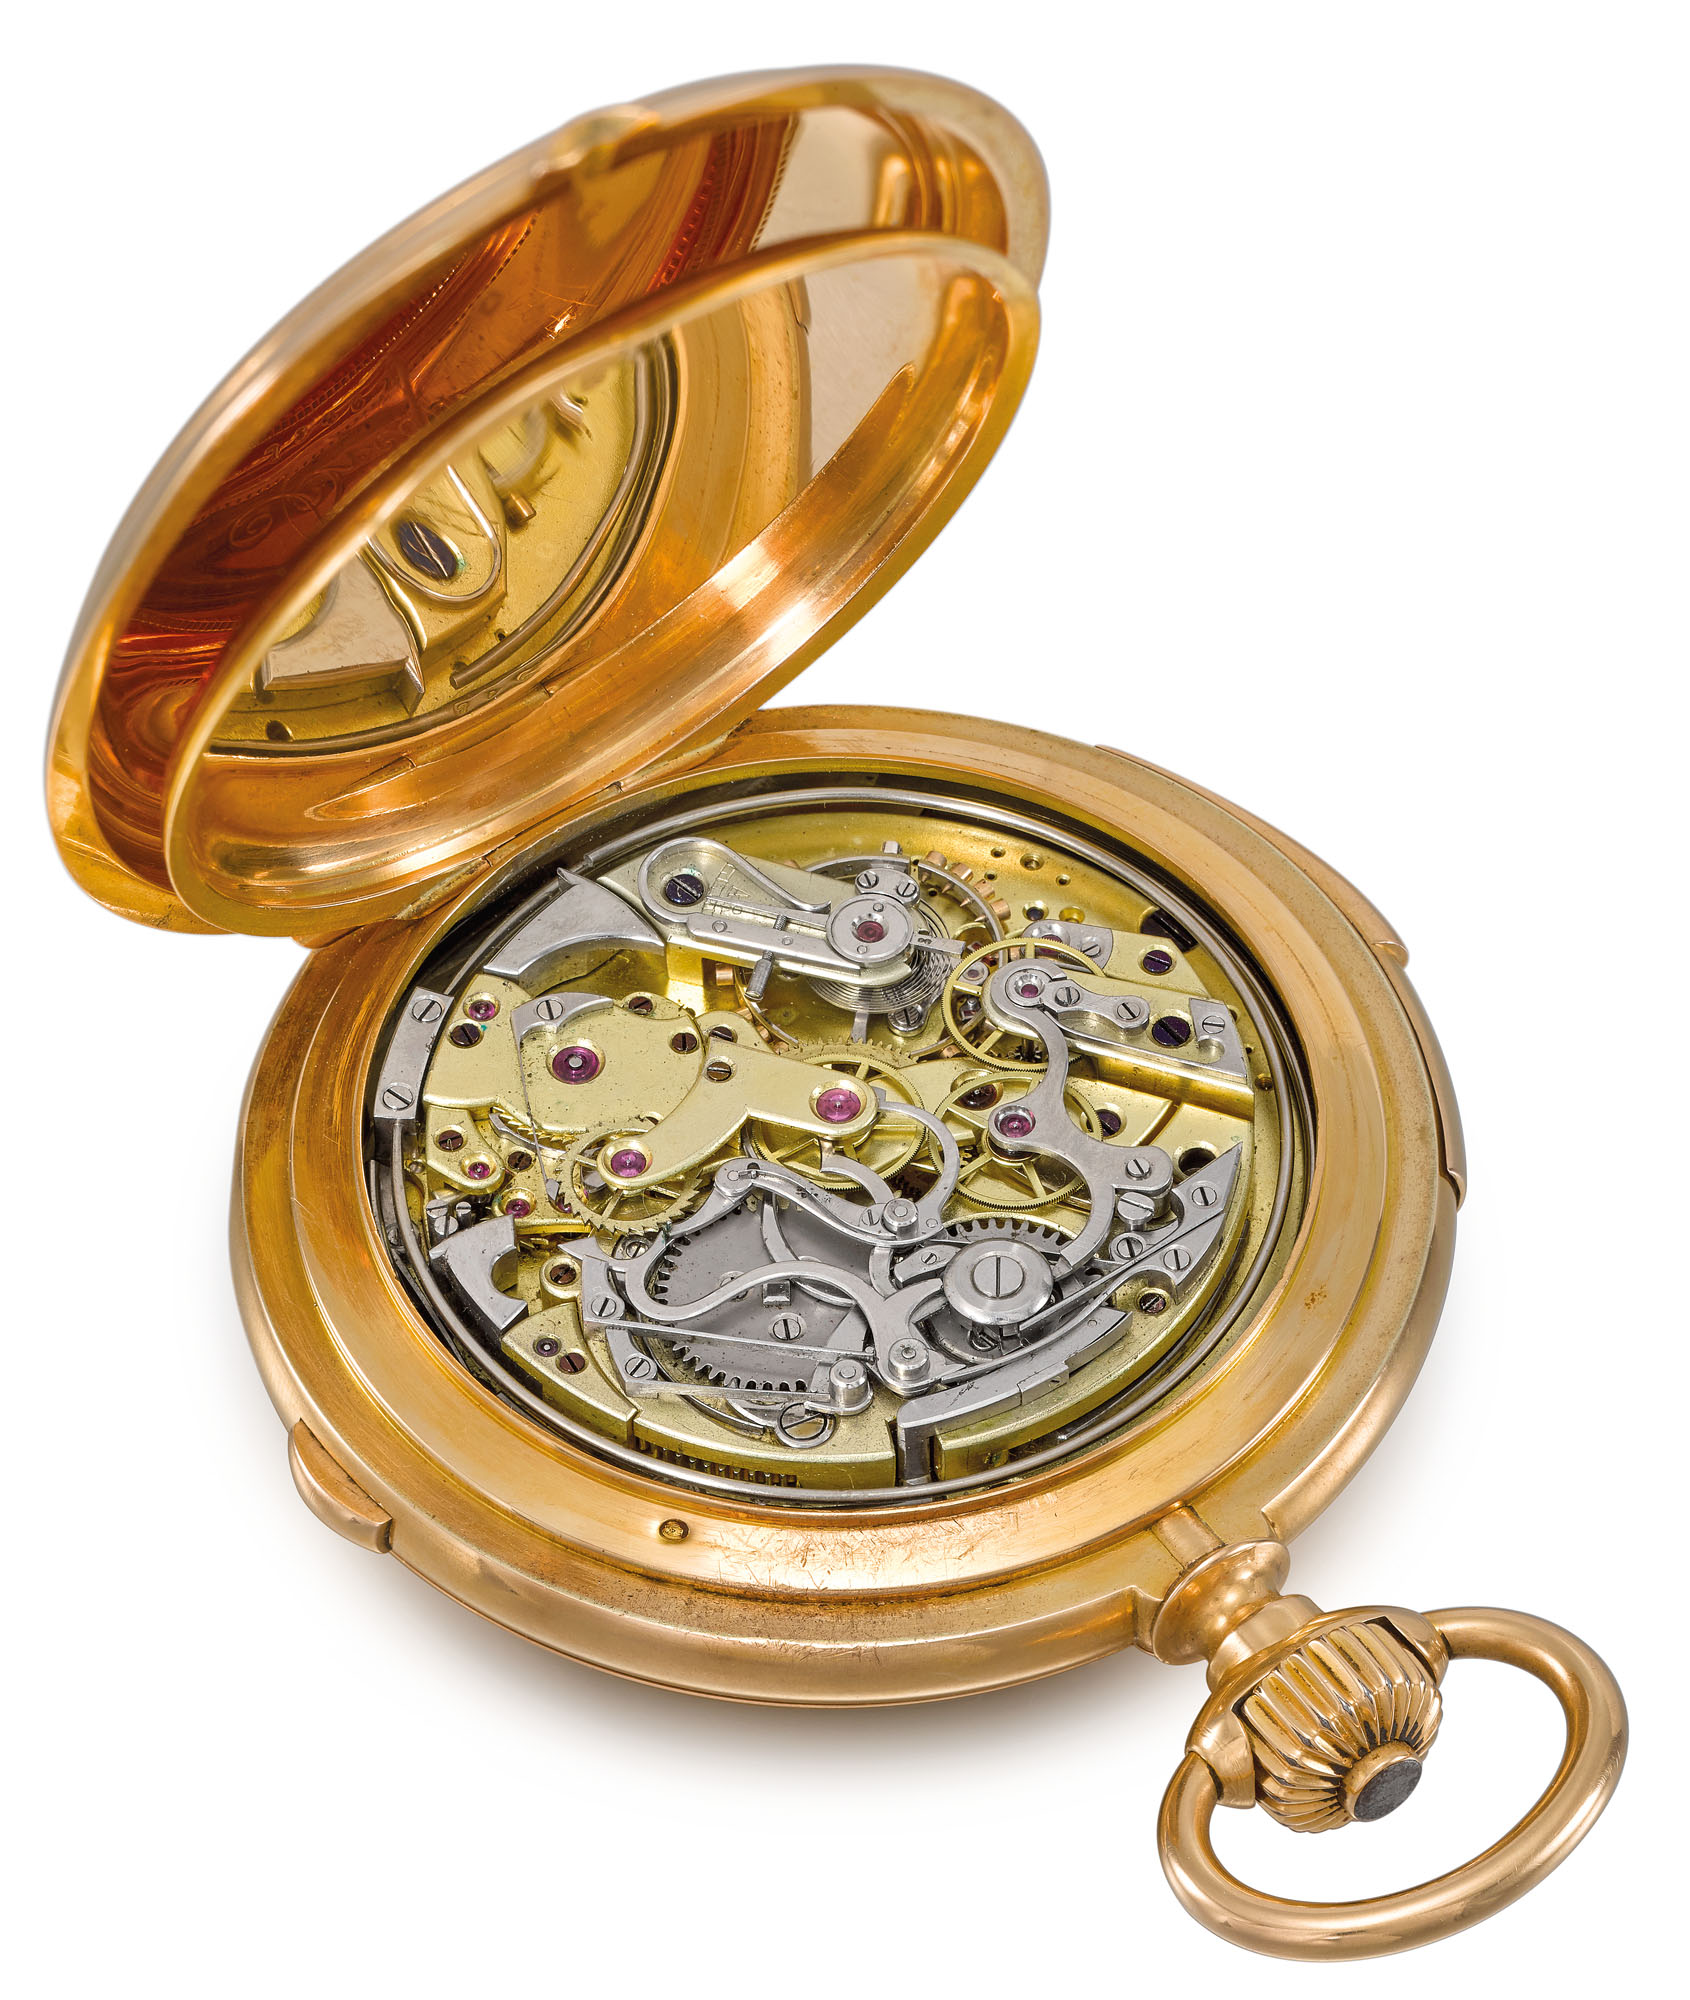 Breguet. A very fine, extremely rare and large 18K gold hunter case minute repeating perpetual calendar chronograph keyless lever watch with moon phases